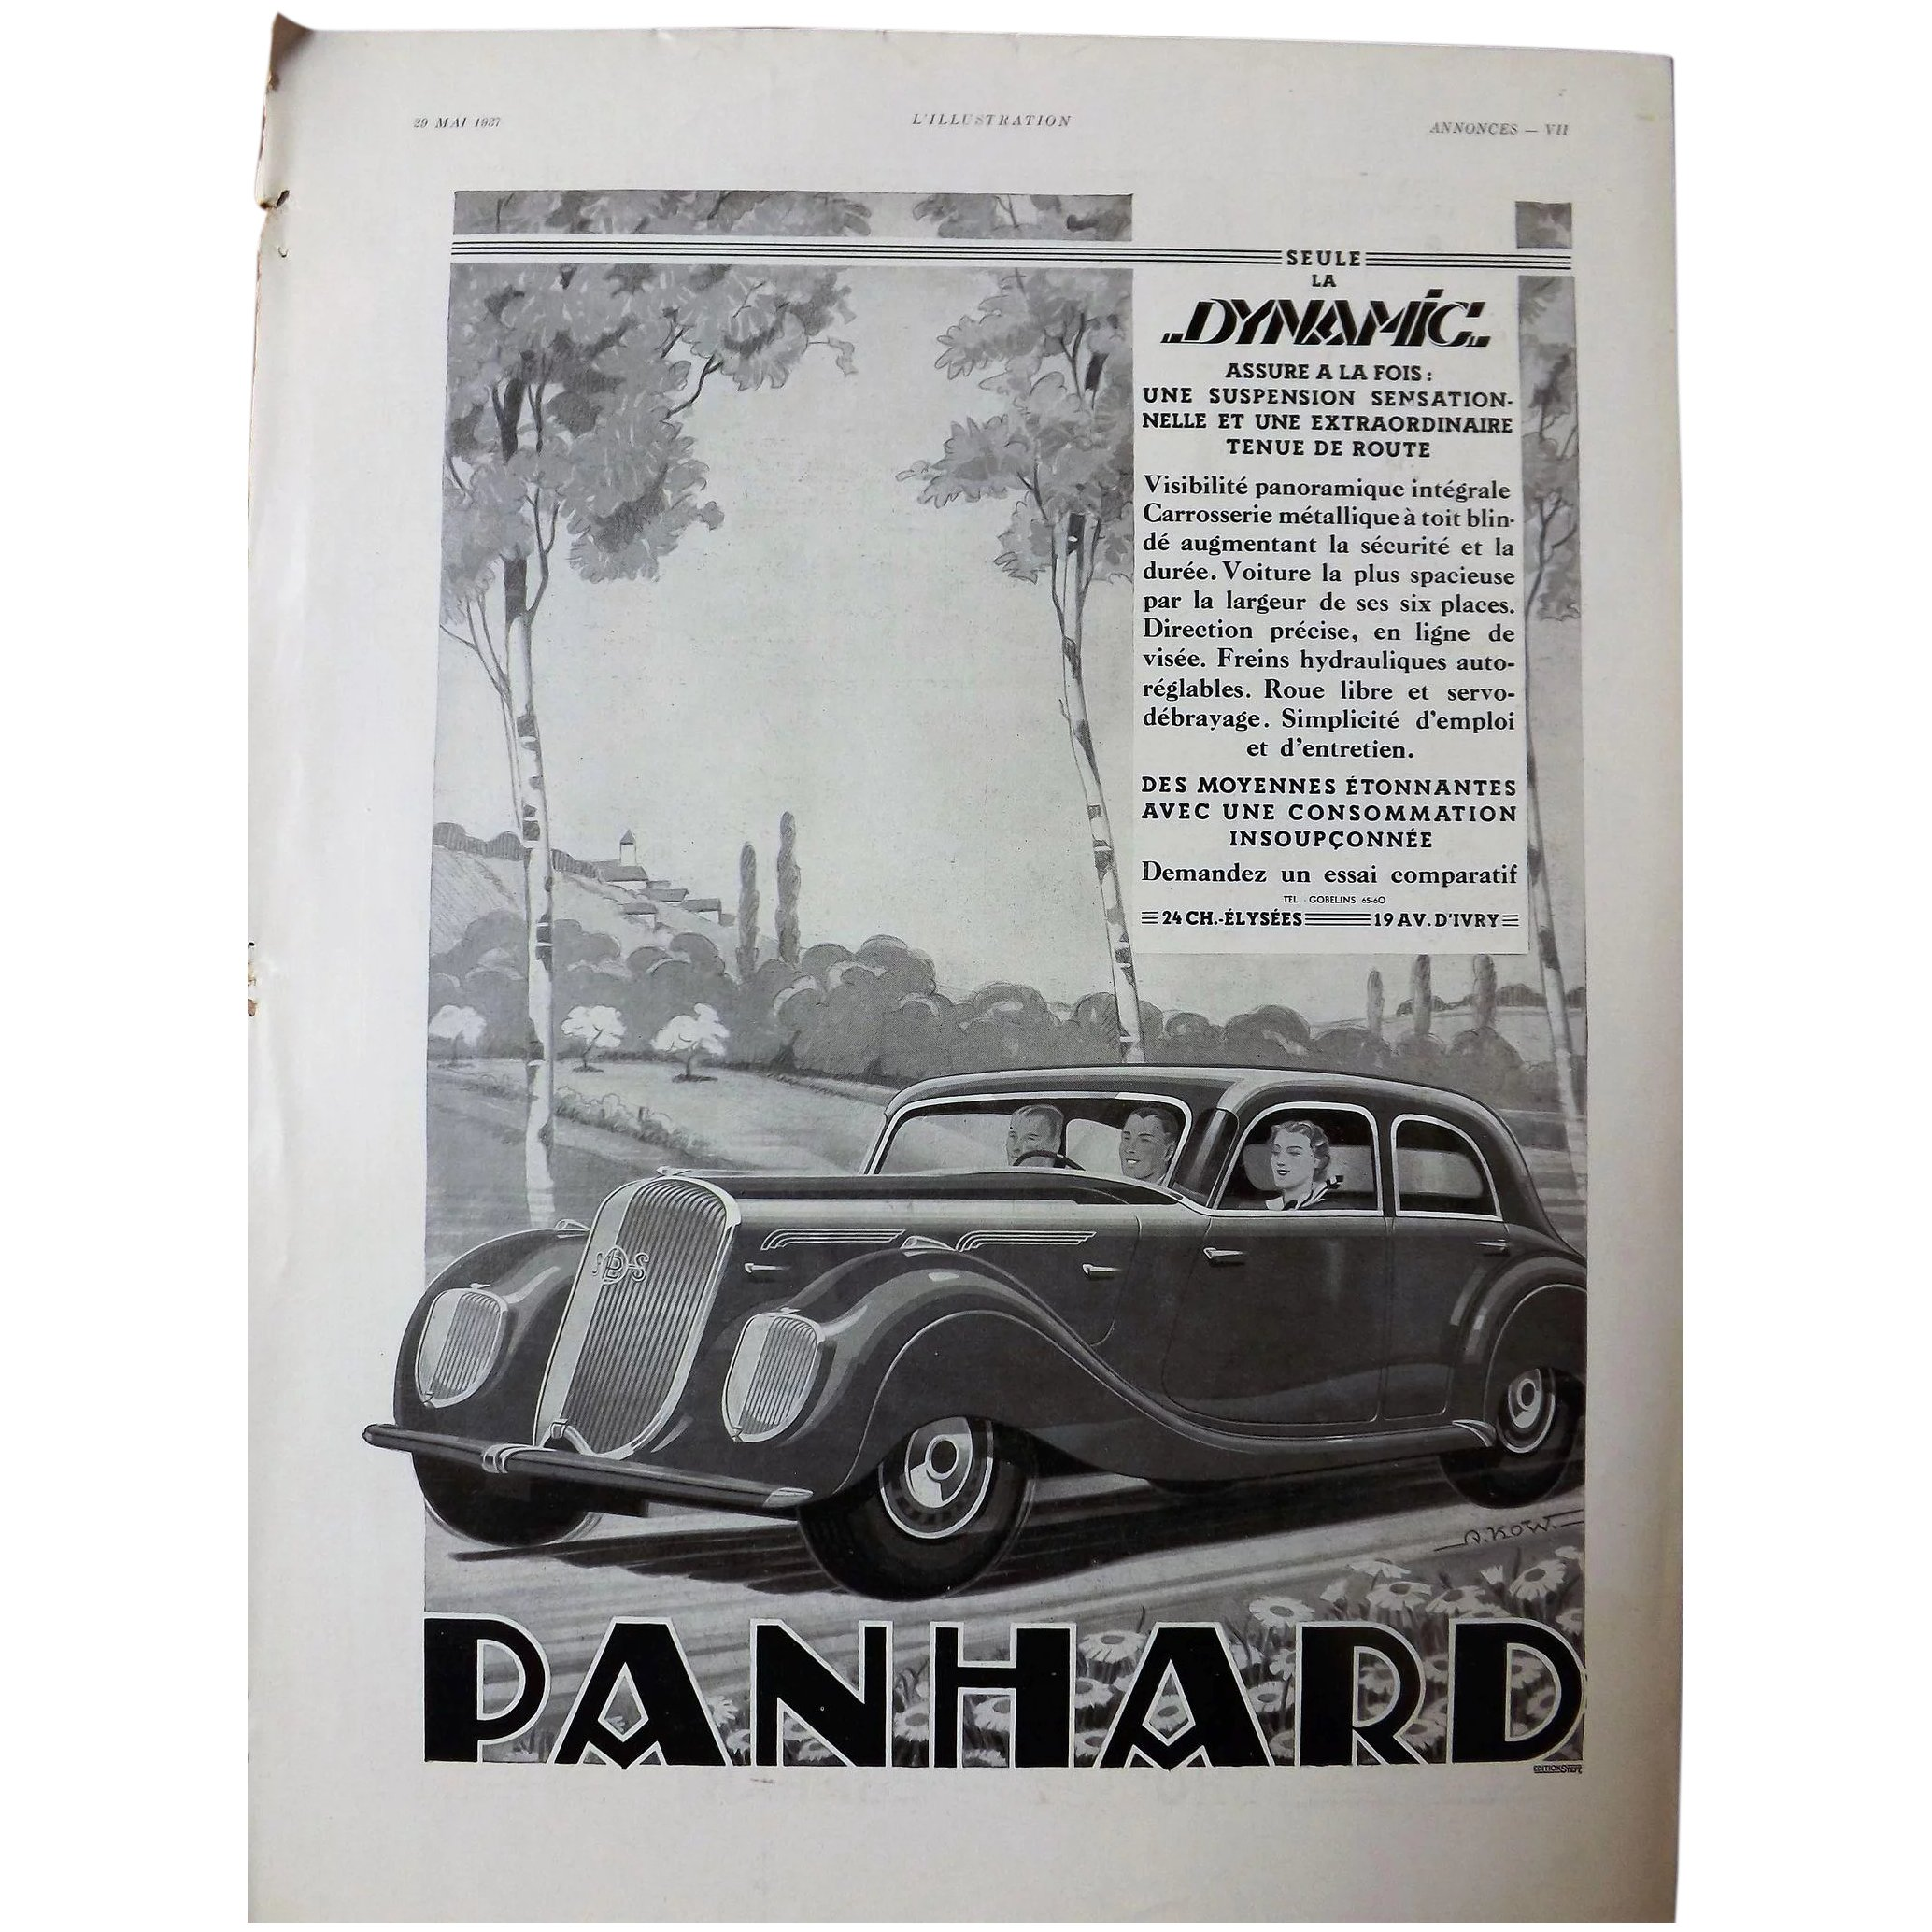 PANHARD Art Deco Advertisement from the French Magazine L' Illustration 1937